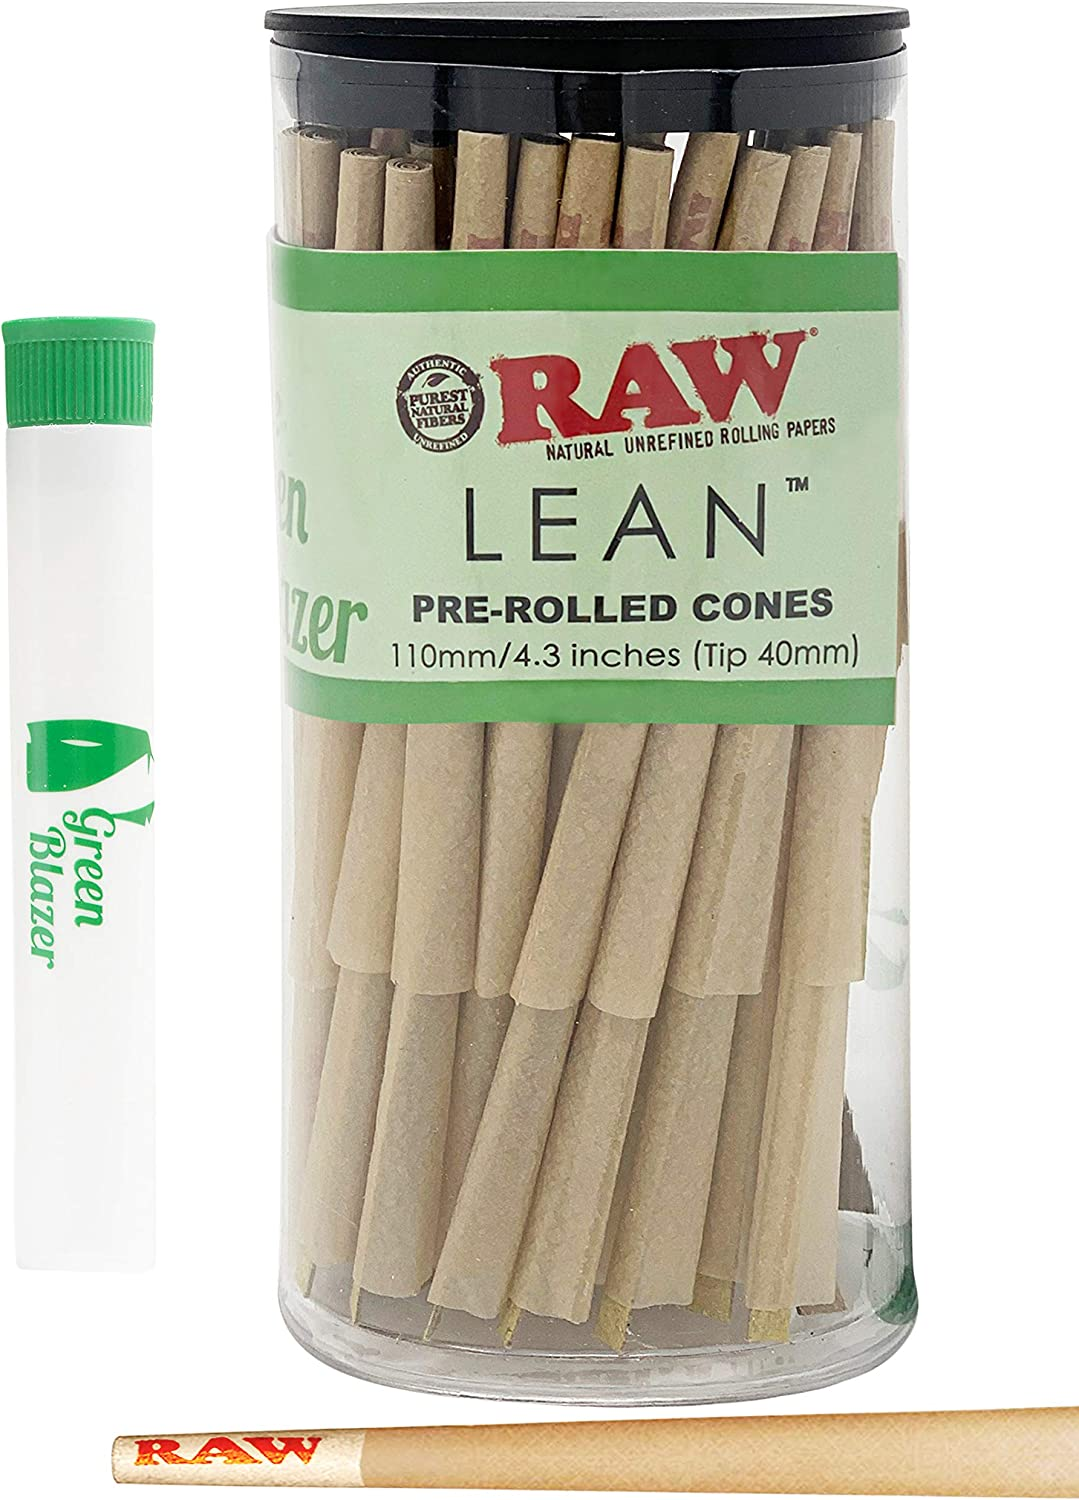 RAW Pre Rolled Cones Lean Size: 100 Pack - Unrefined Classic Rolling Papers with Filter Tips - Includes Green Blazer Doob Tube